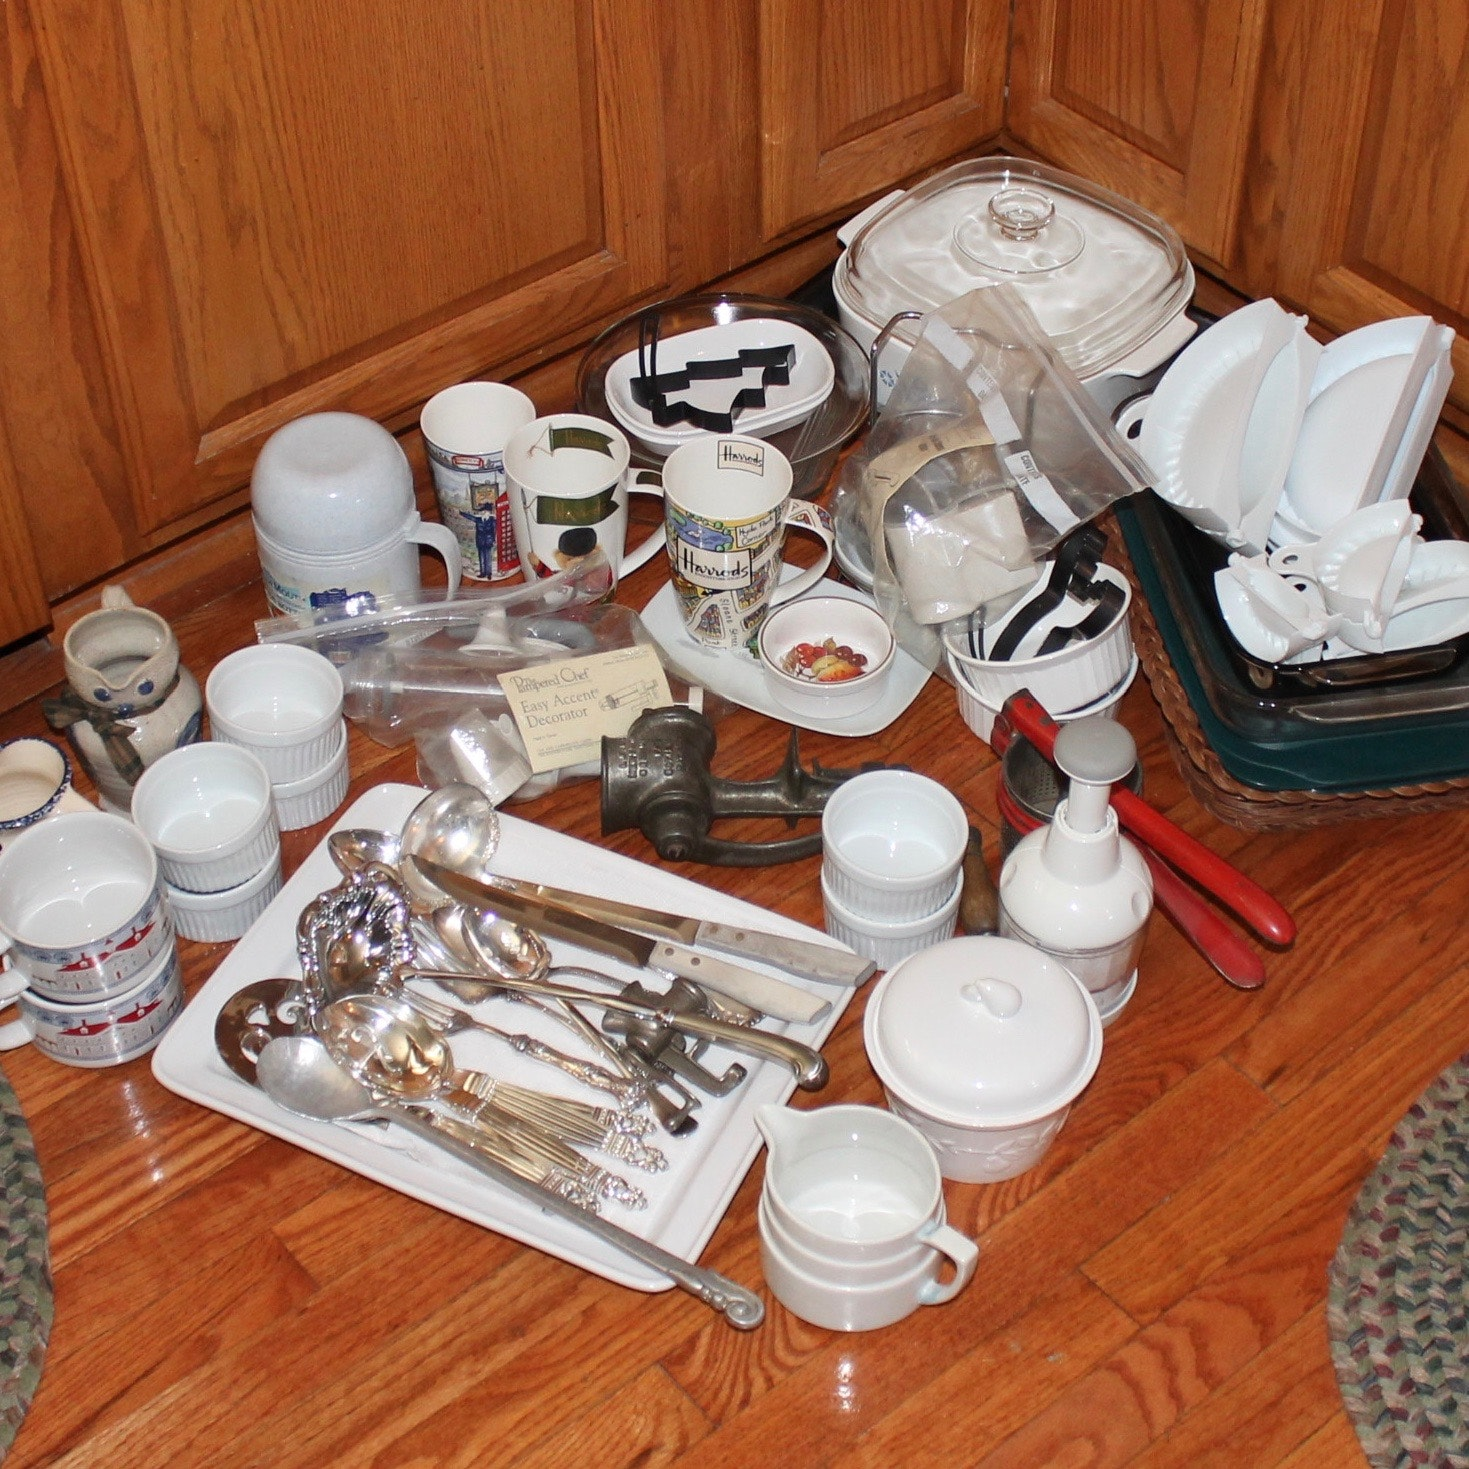 Assorted Bakeware, Cookware, and Utensils